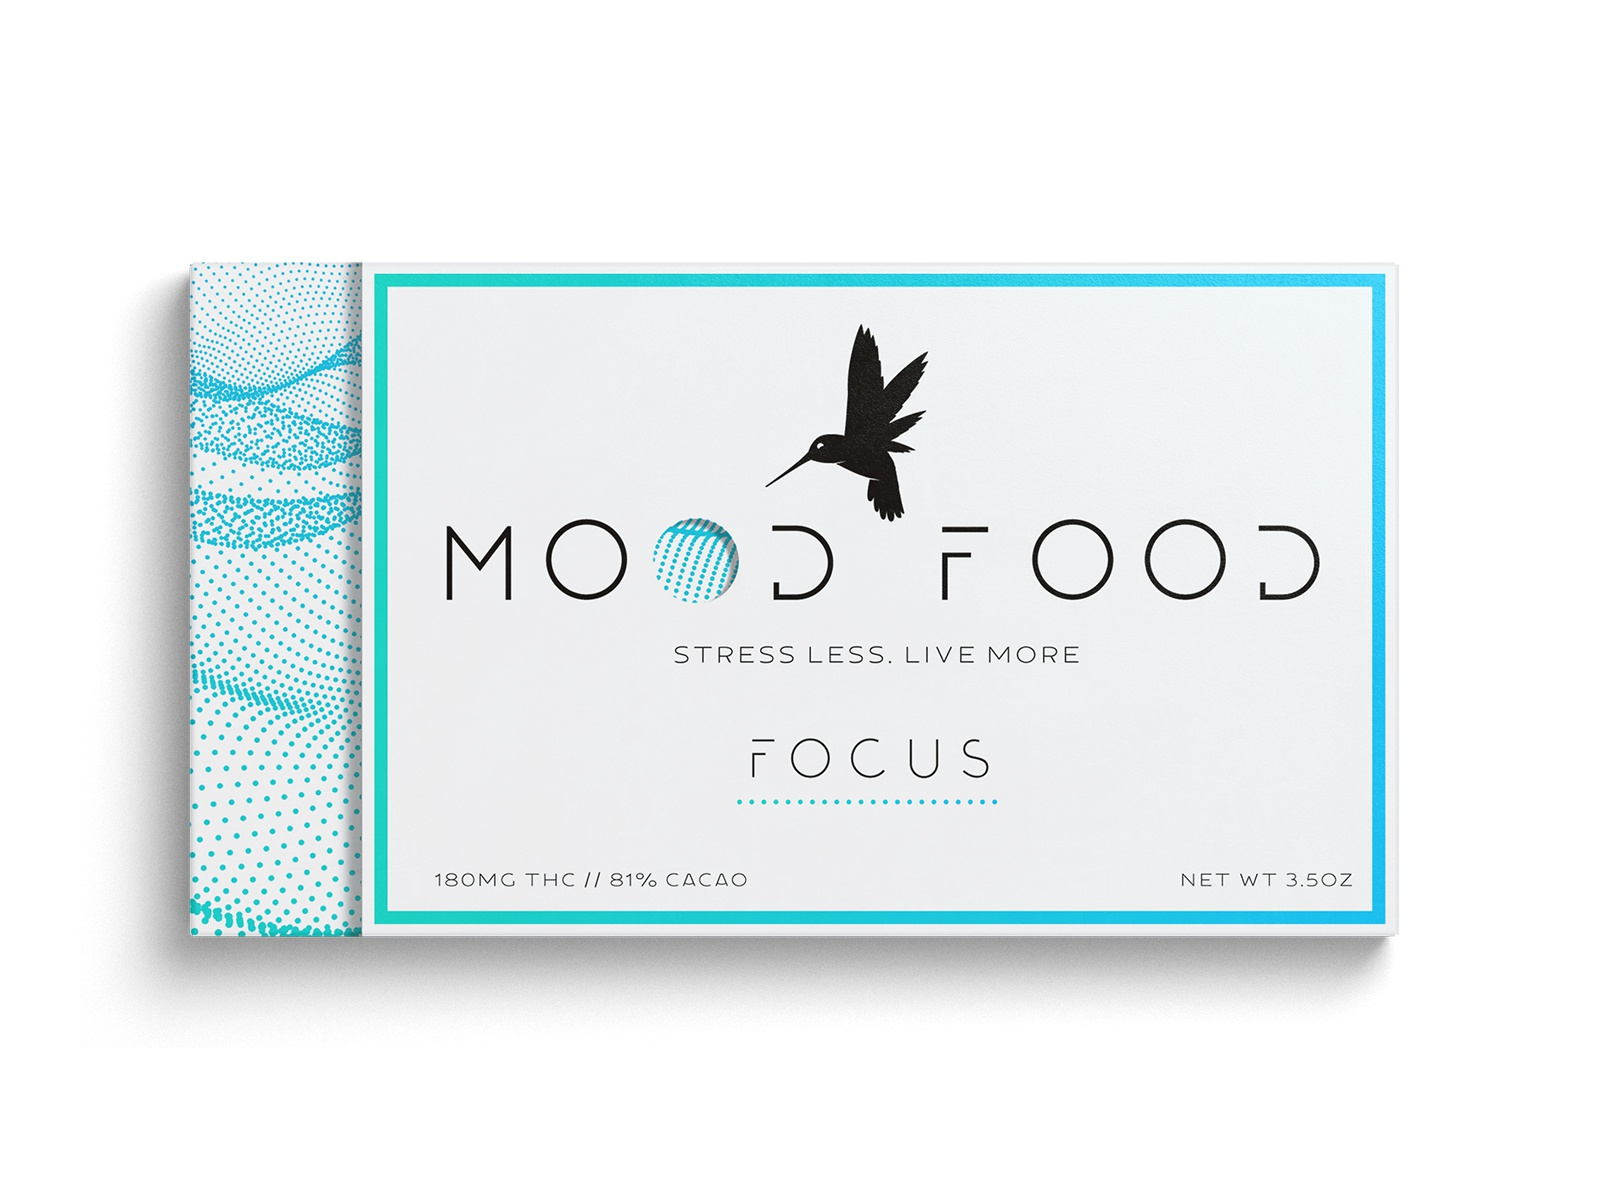 Mood food website focus